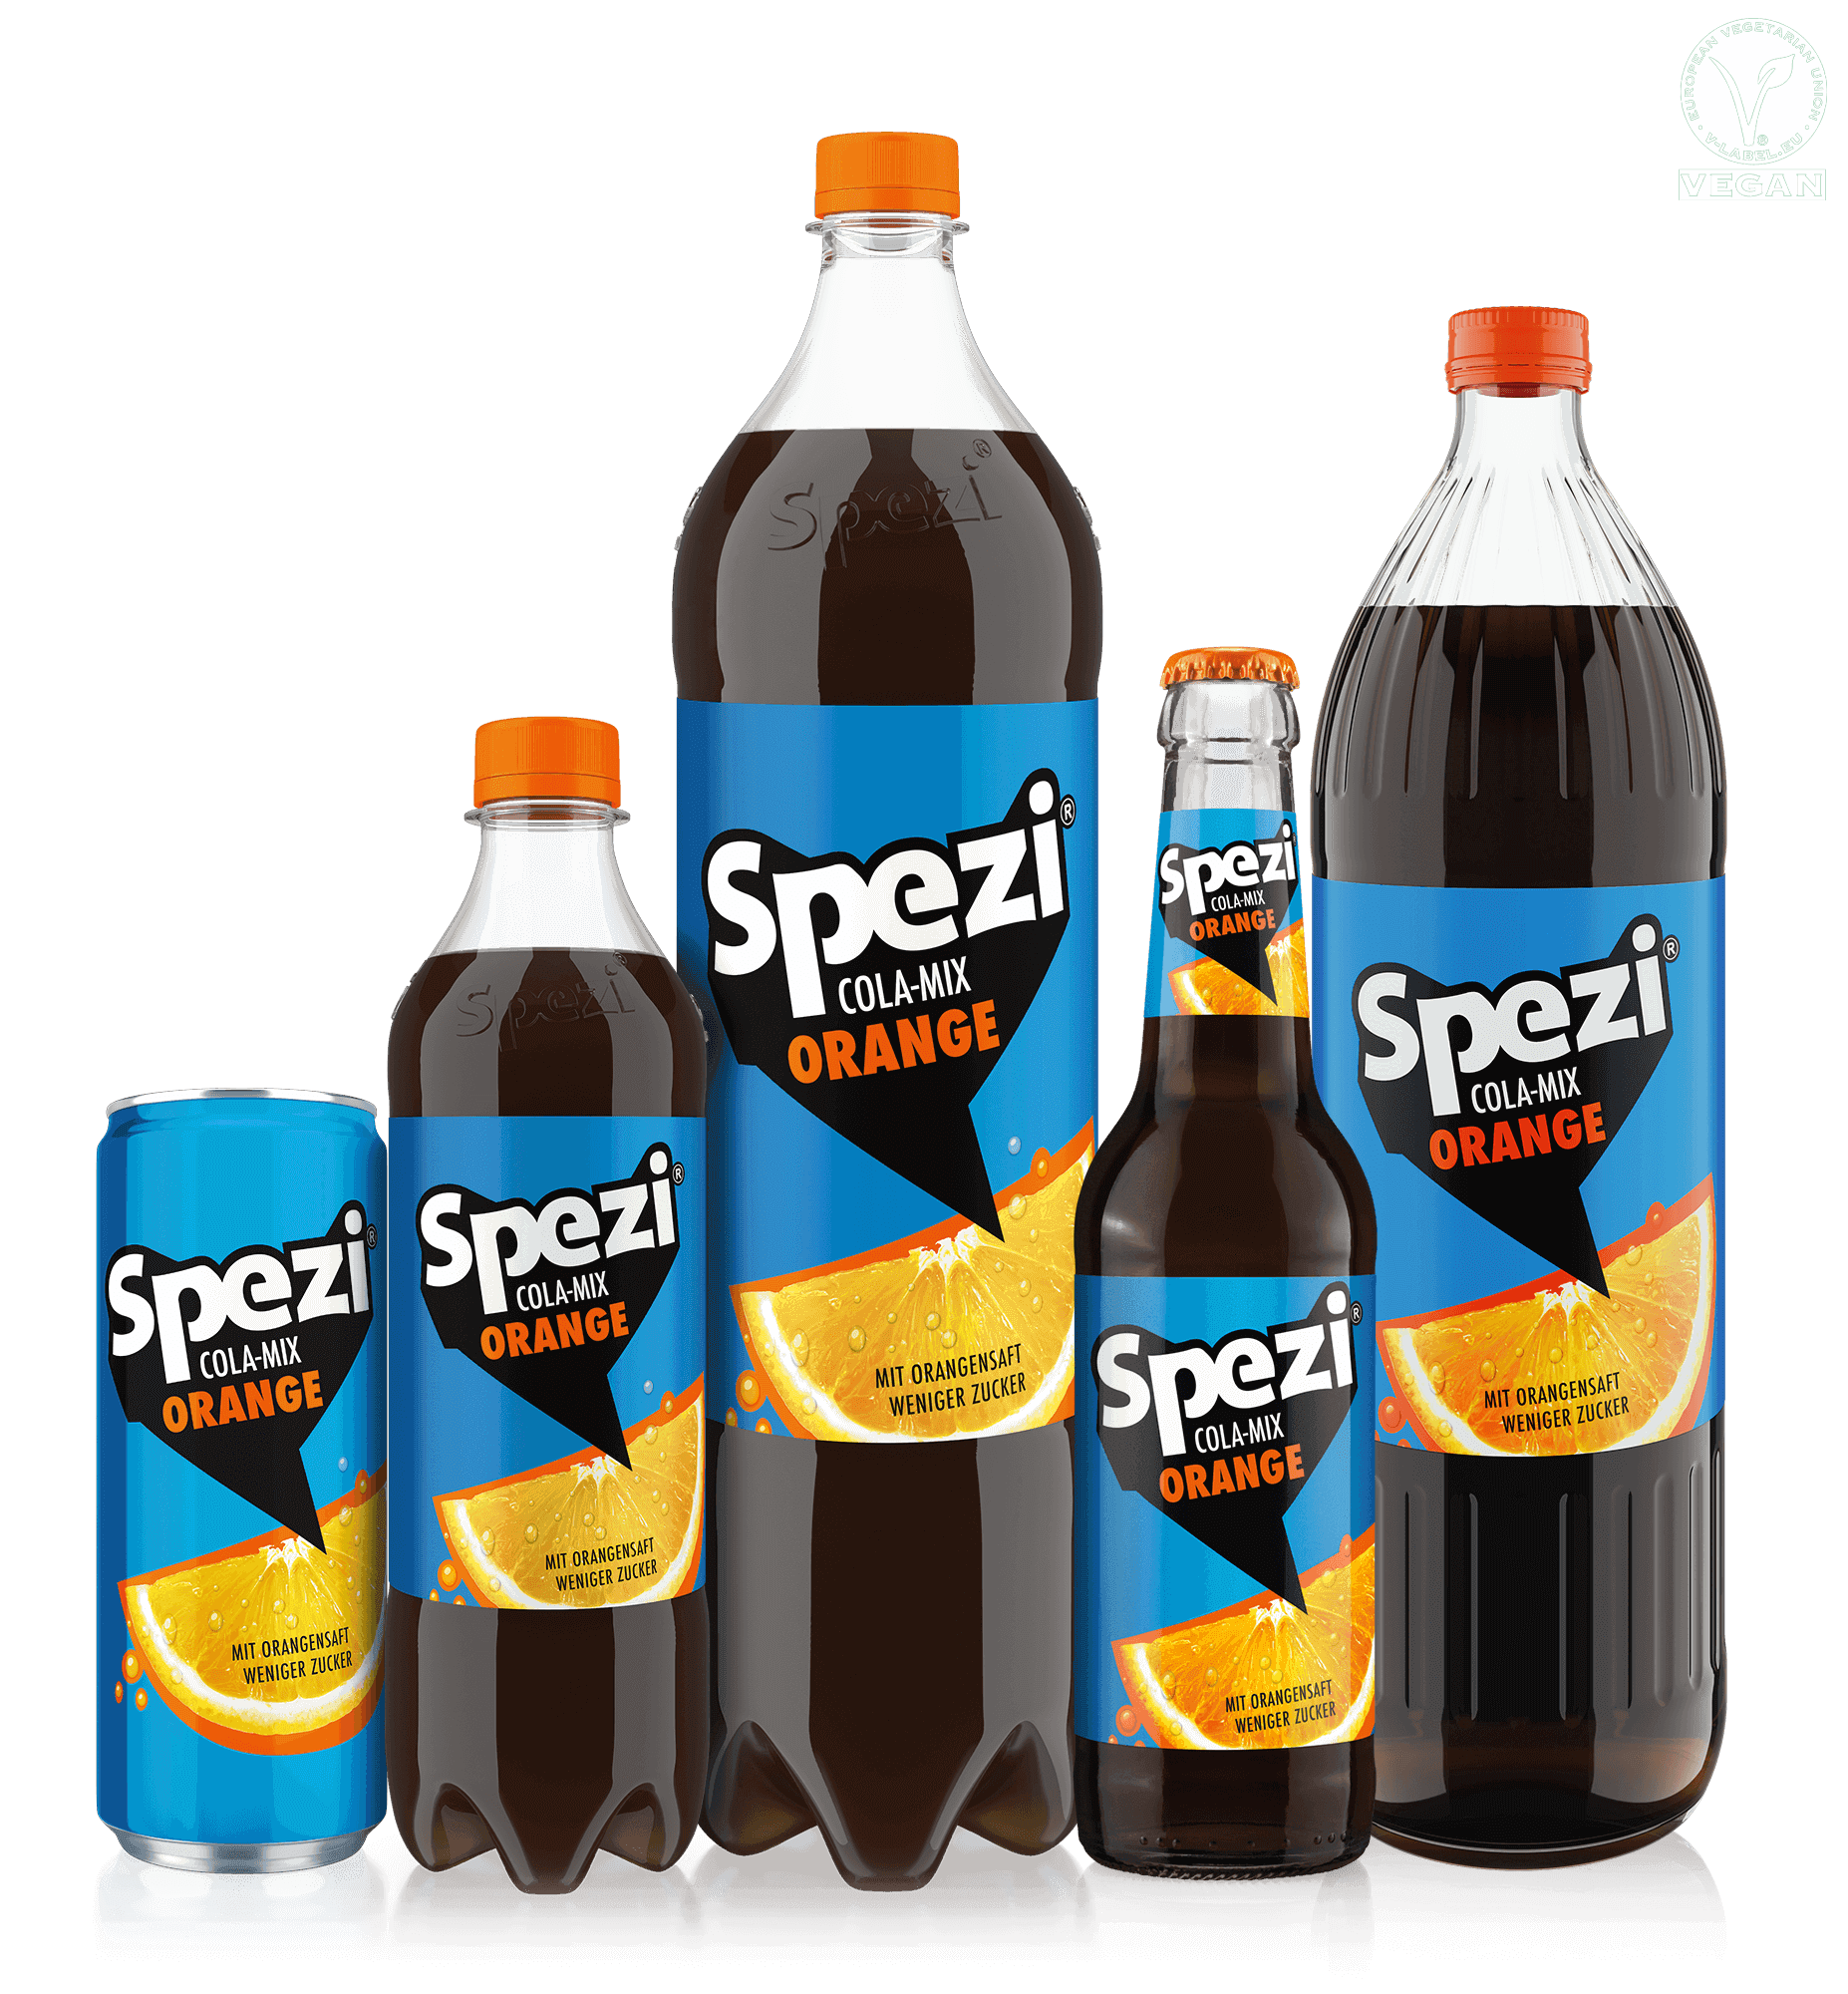 Bottles of Spezi orange in two sizes and a can